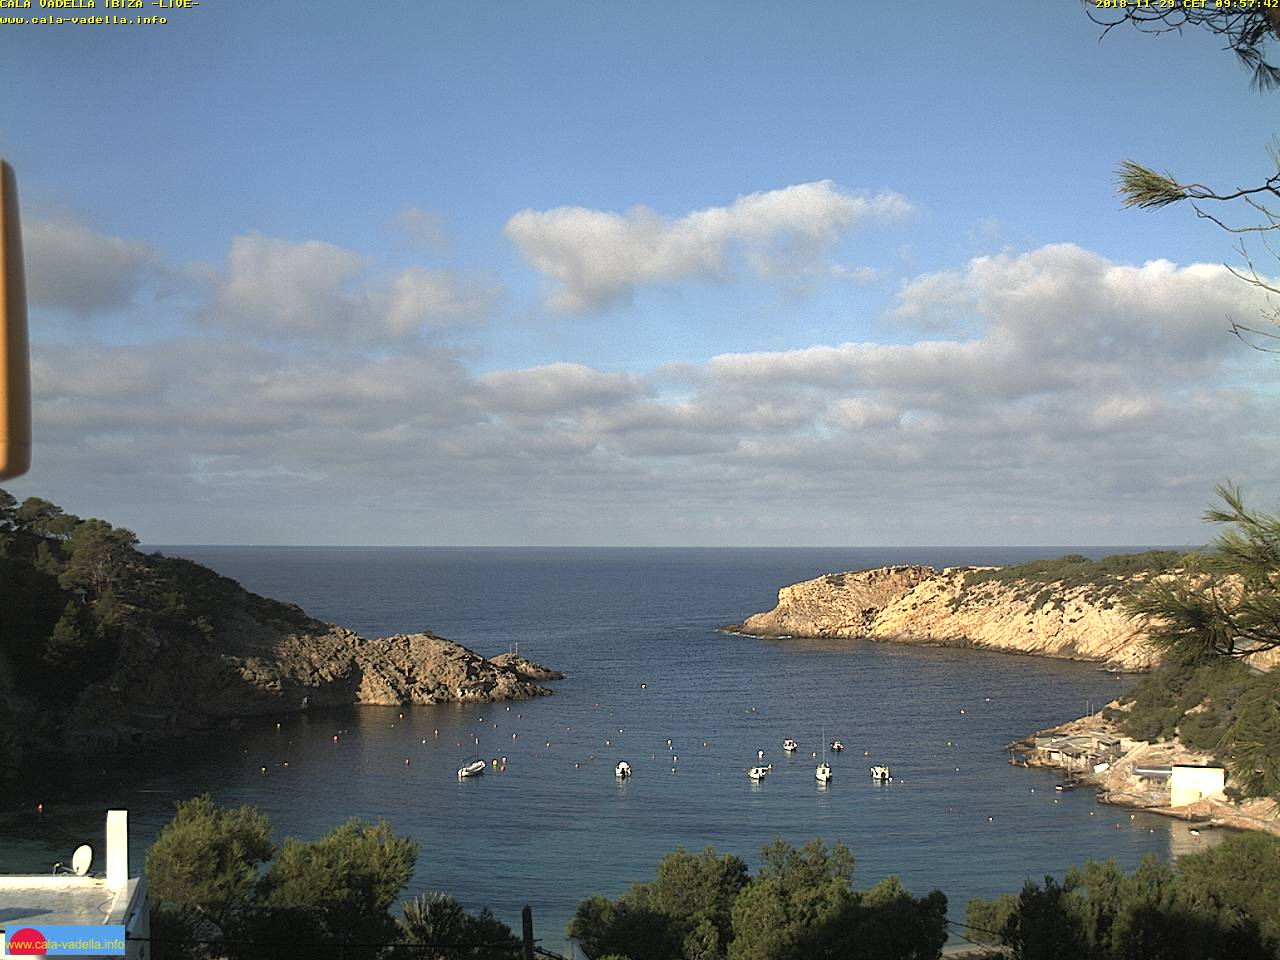 Ibiza - Cala Vadella - View of the Bay